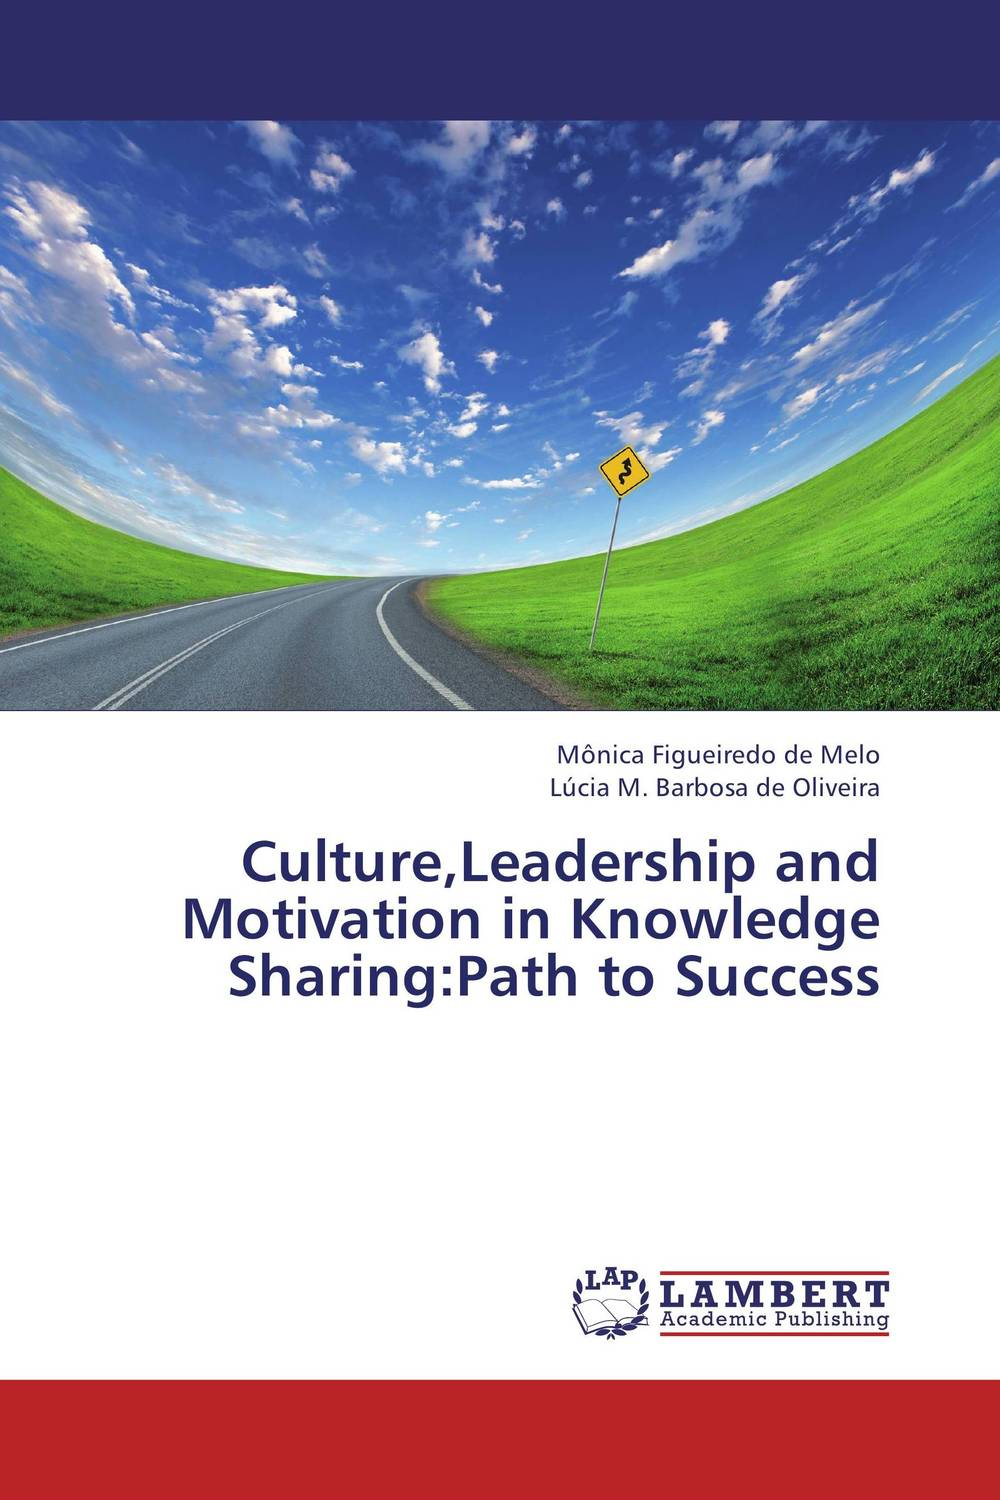 Culture,Leadership and Motivation in Knowledge Sharing:Path to Success